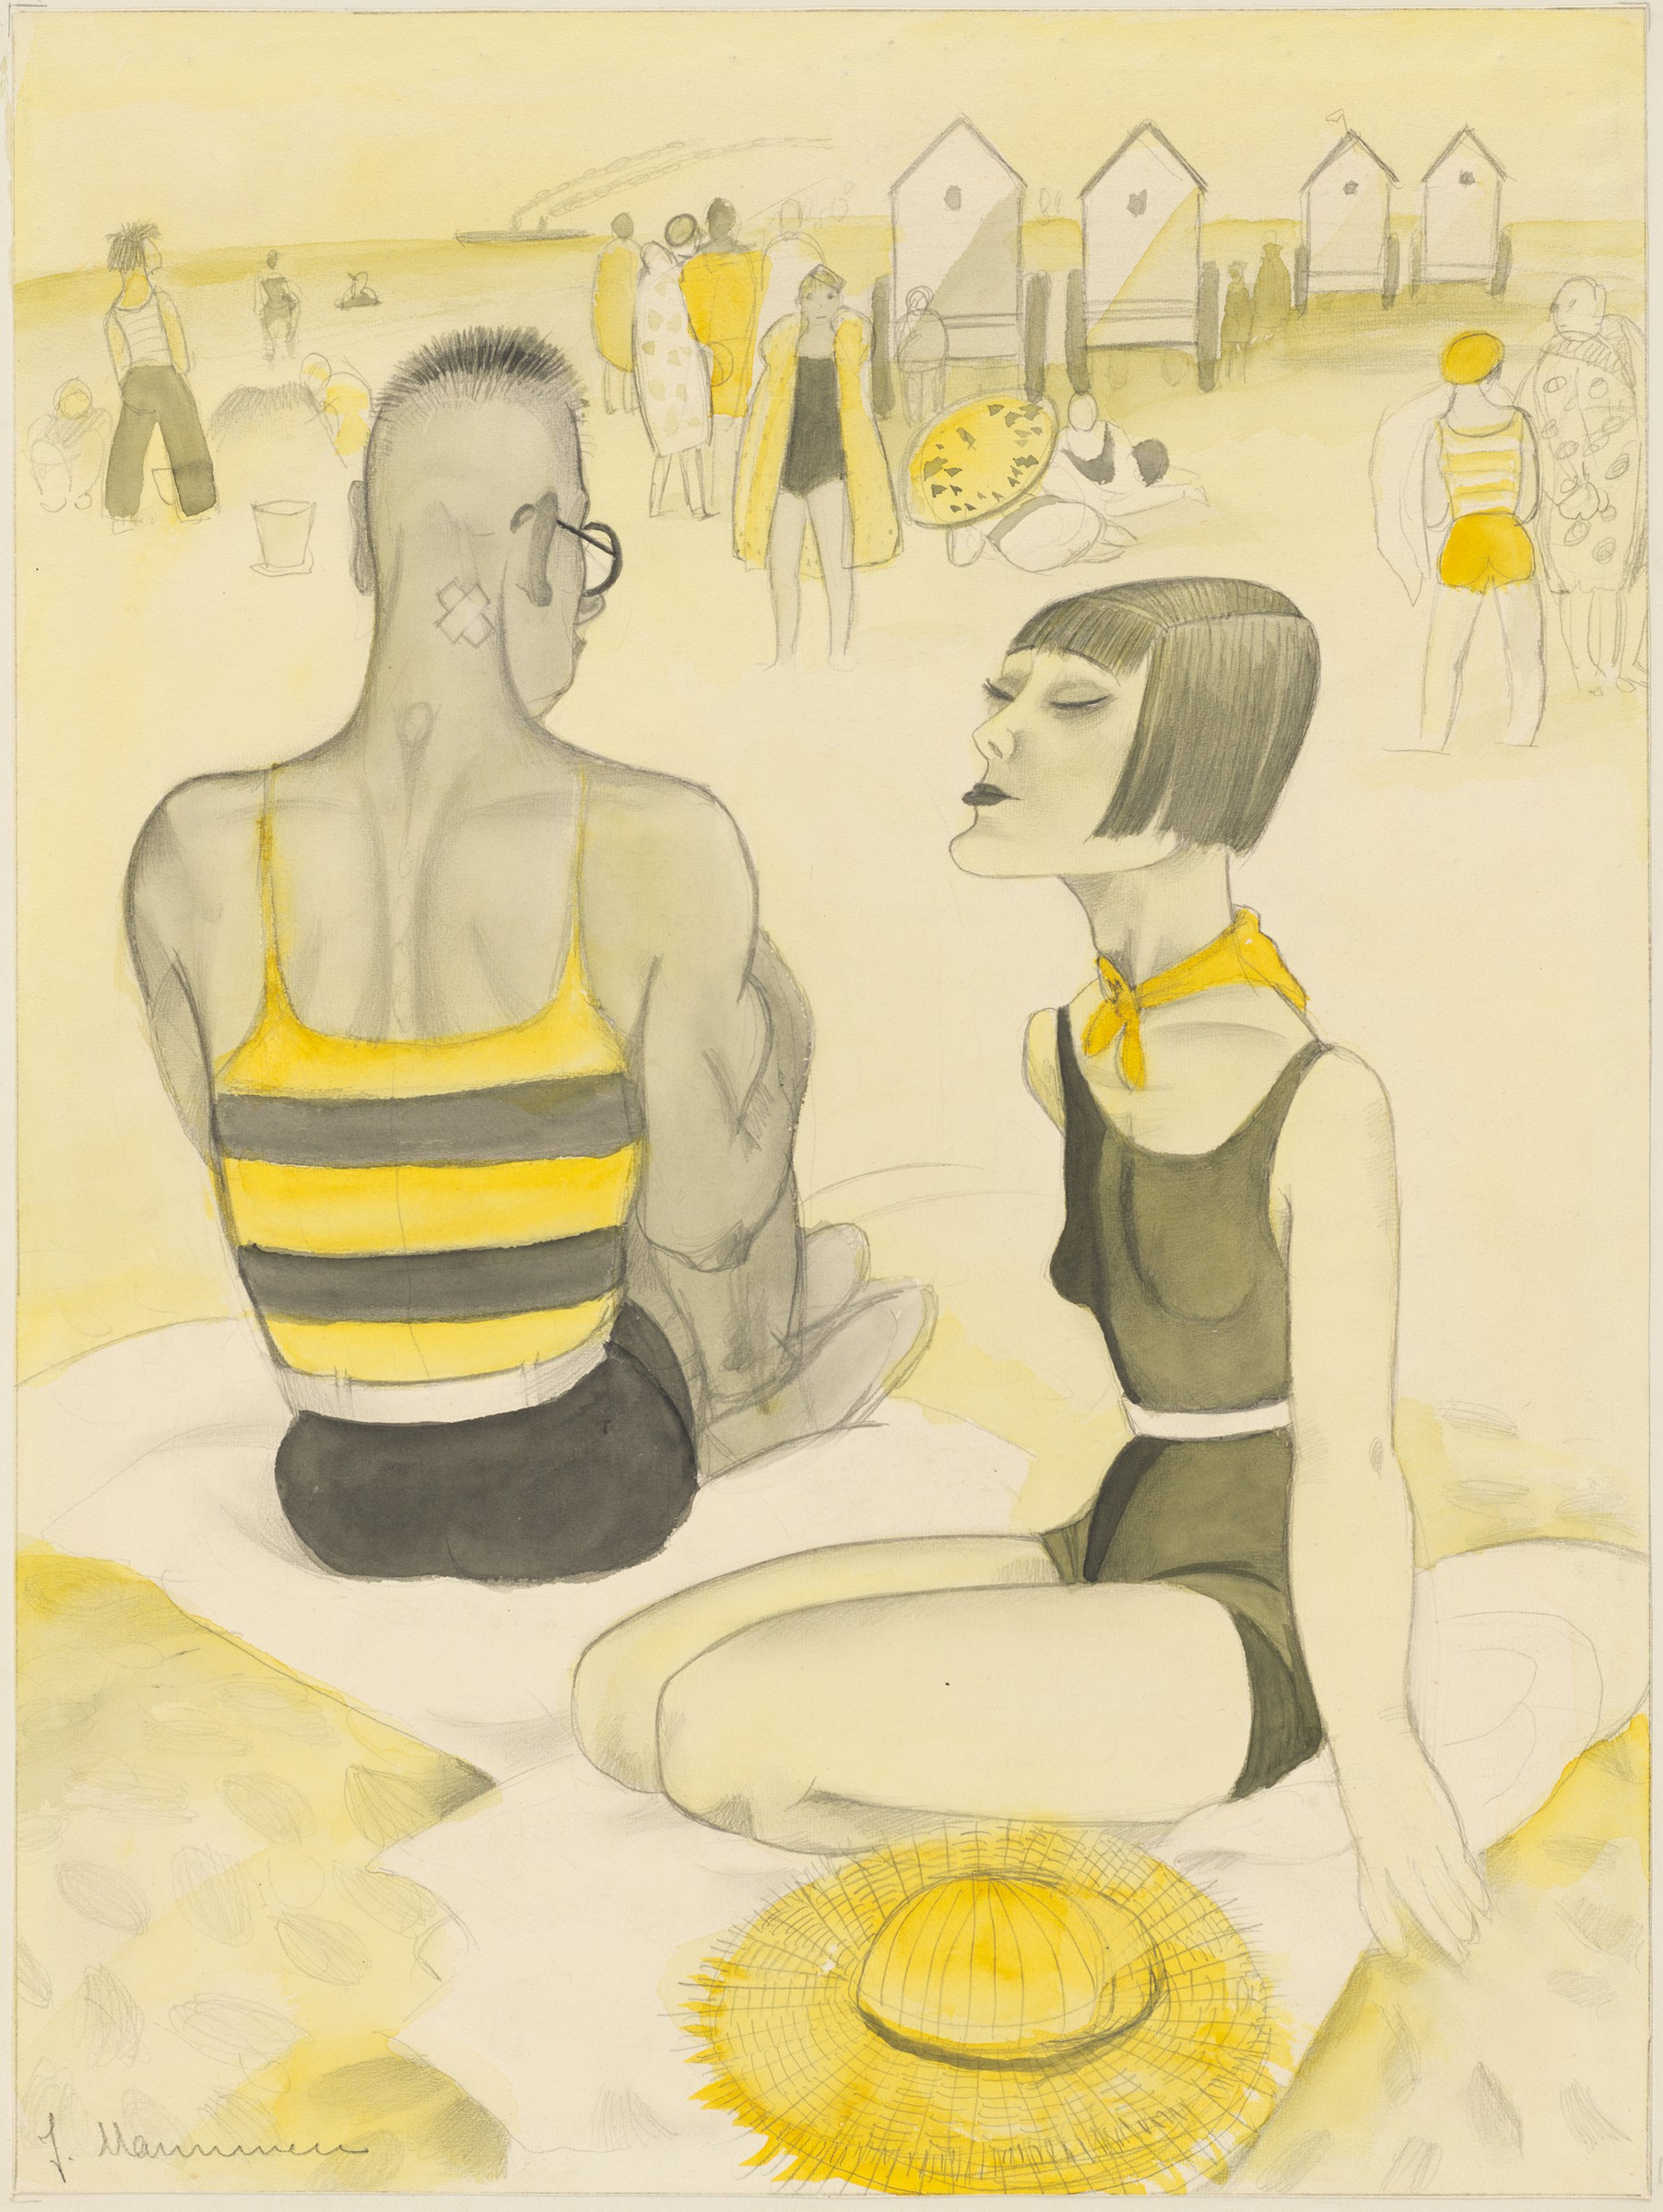 In the foreground of this drawing, a man and woman sit close together on two towels on a beach. In the background, small groups of people stand, sit, and lie on the sand. Four beach huts occupy the top right corner. An outline of an ocean liner trailing steam is visible on the horizon.